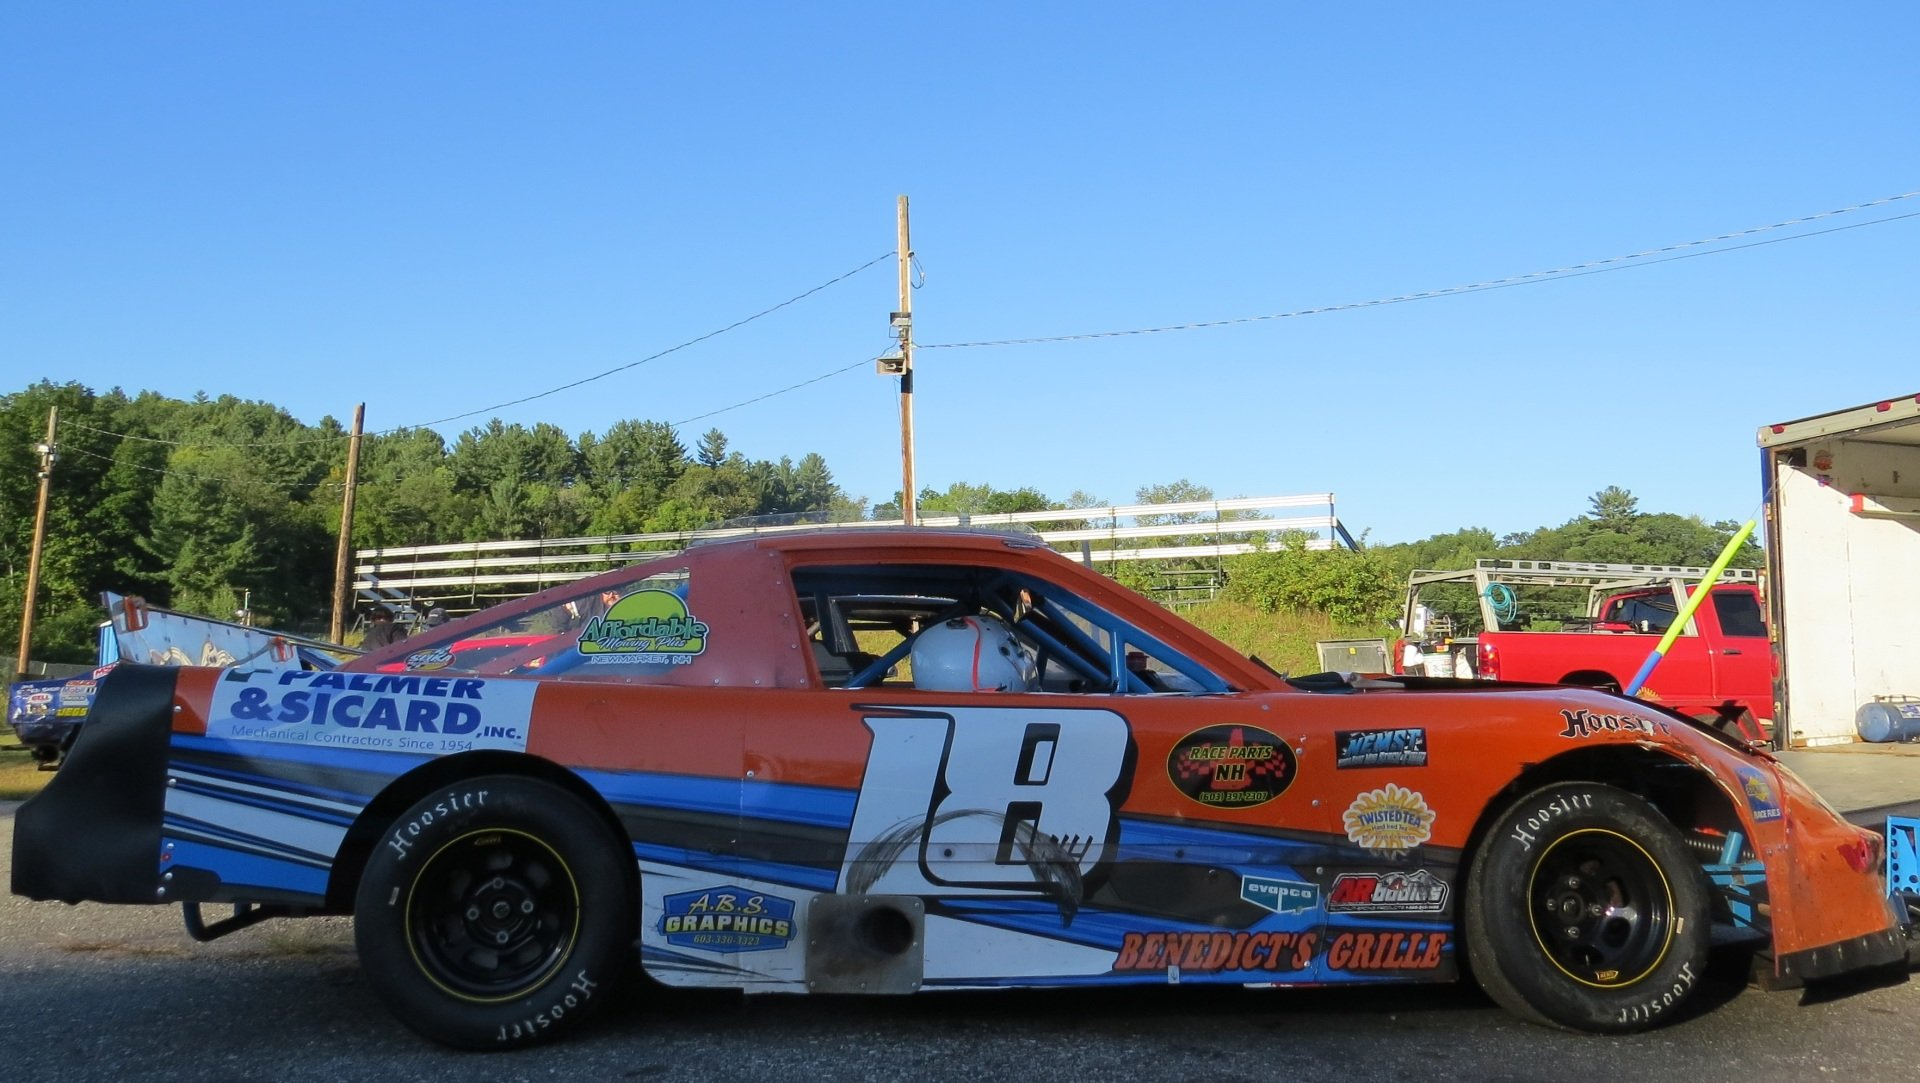 NH Racer Starts a Racing Raffle to Help Sponsor in Need